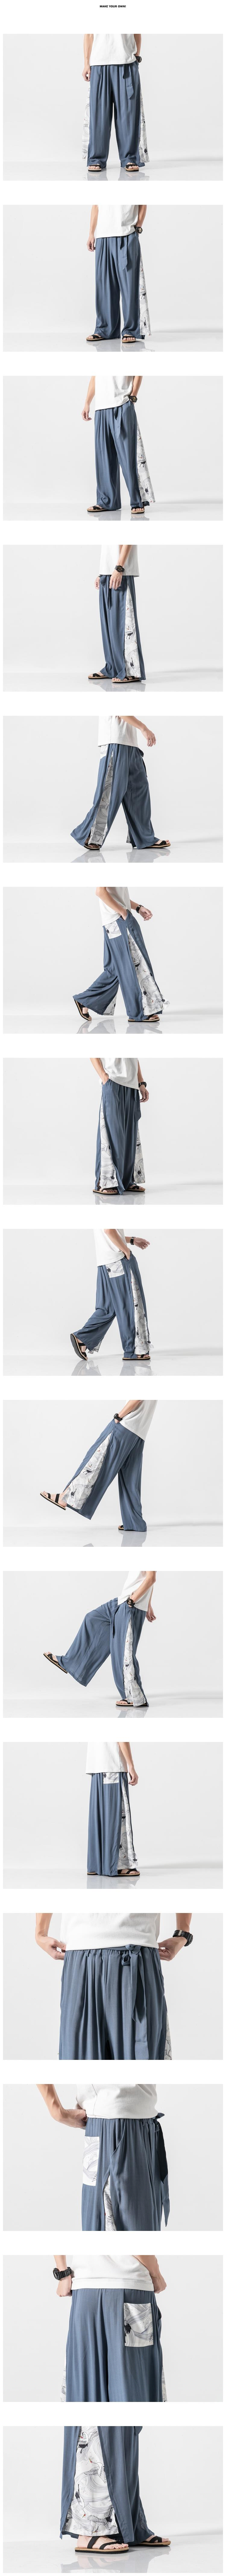 Sinicism Store 2020 Summer Chinese Style Cotton Pants Mens Patchwork Vintage Loose Pants Male Wide Leg Pants 24